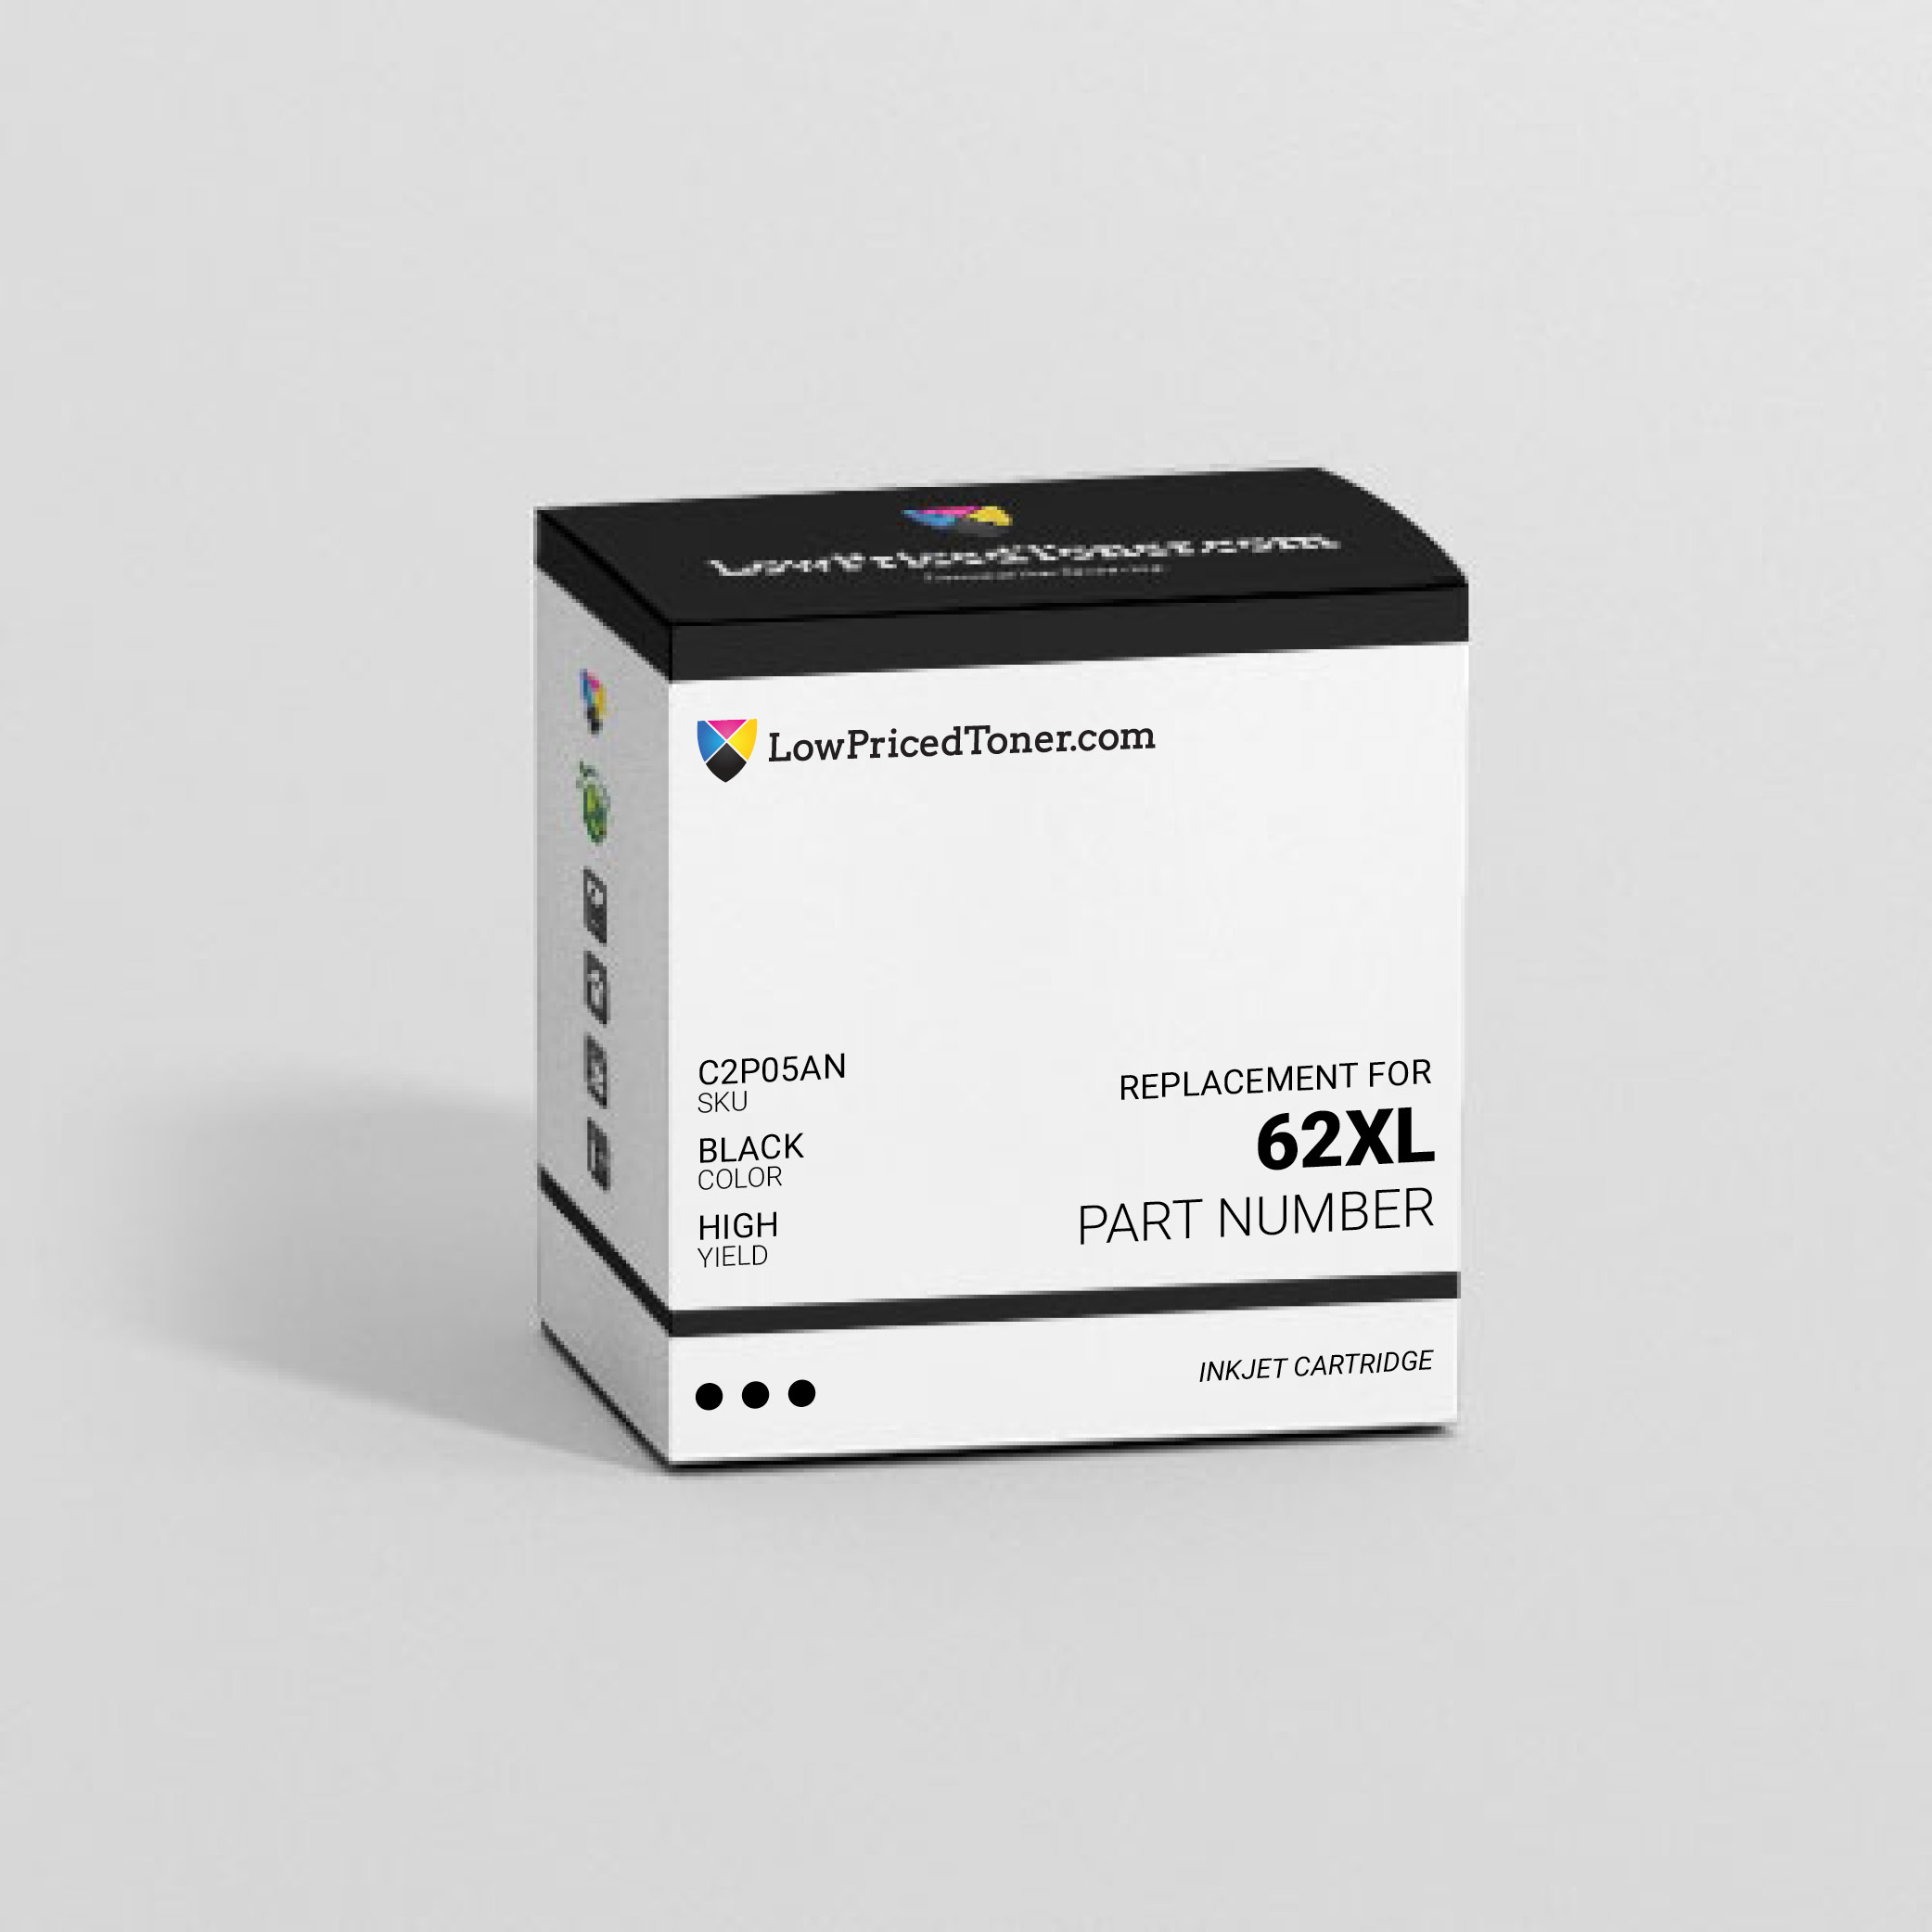 HP C2P05AN 62XL Remanufactured Black Ink Cartridge High Yield